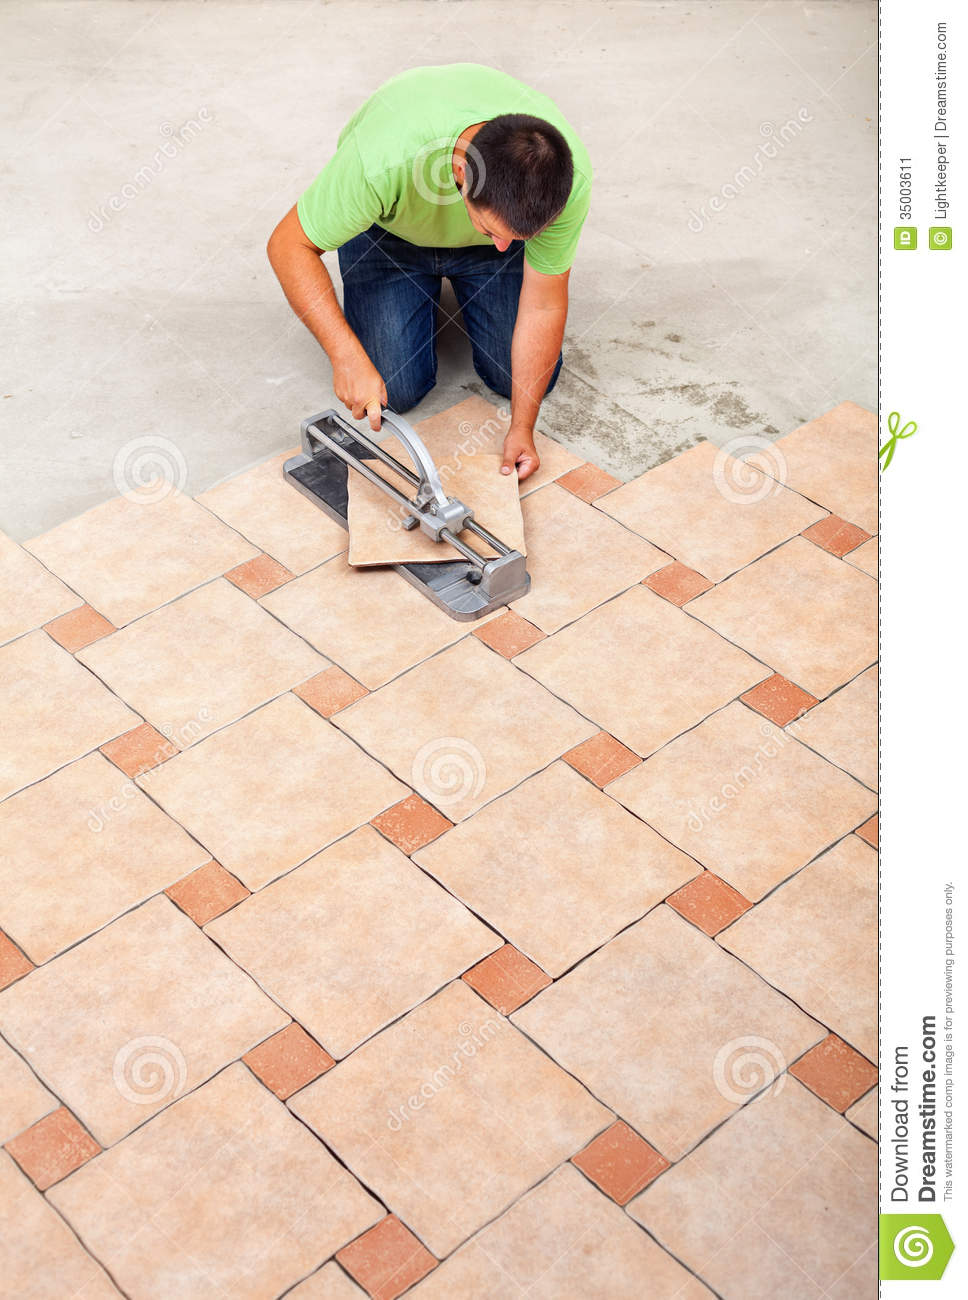 Man Laying Ceramic Floor Tiles Stock Image - Image of tool, flooring ...